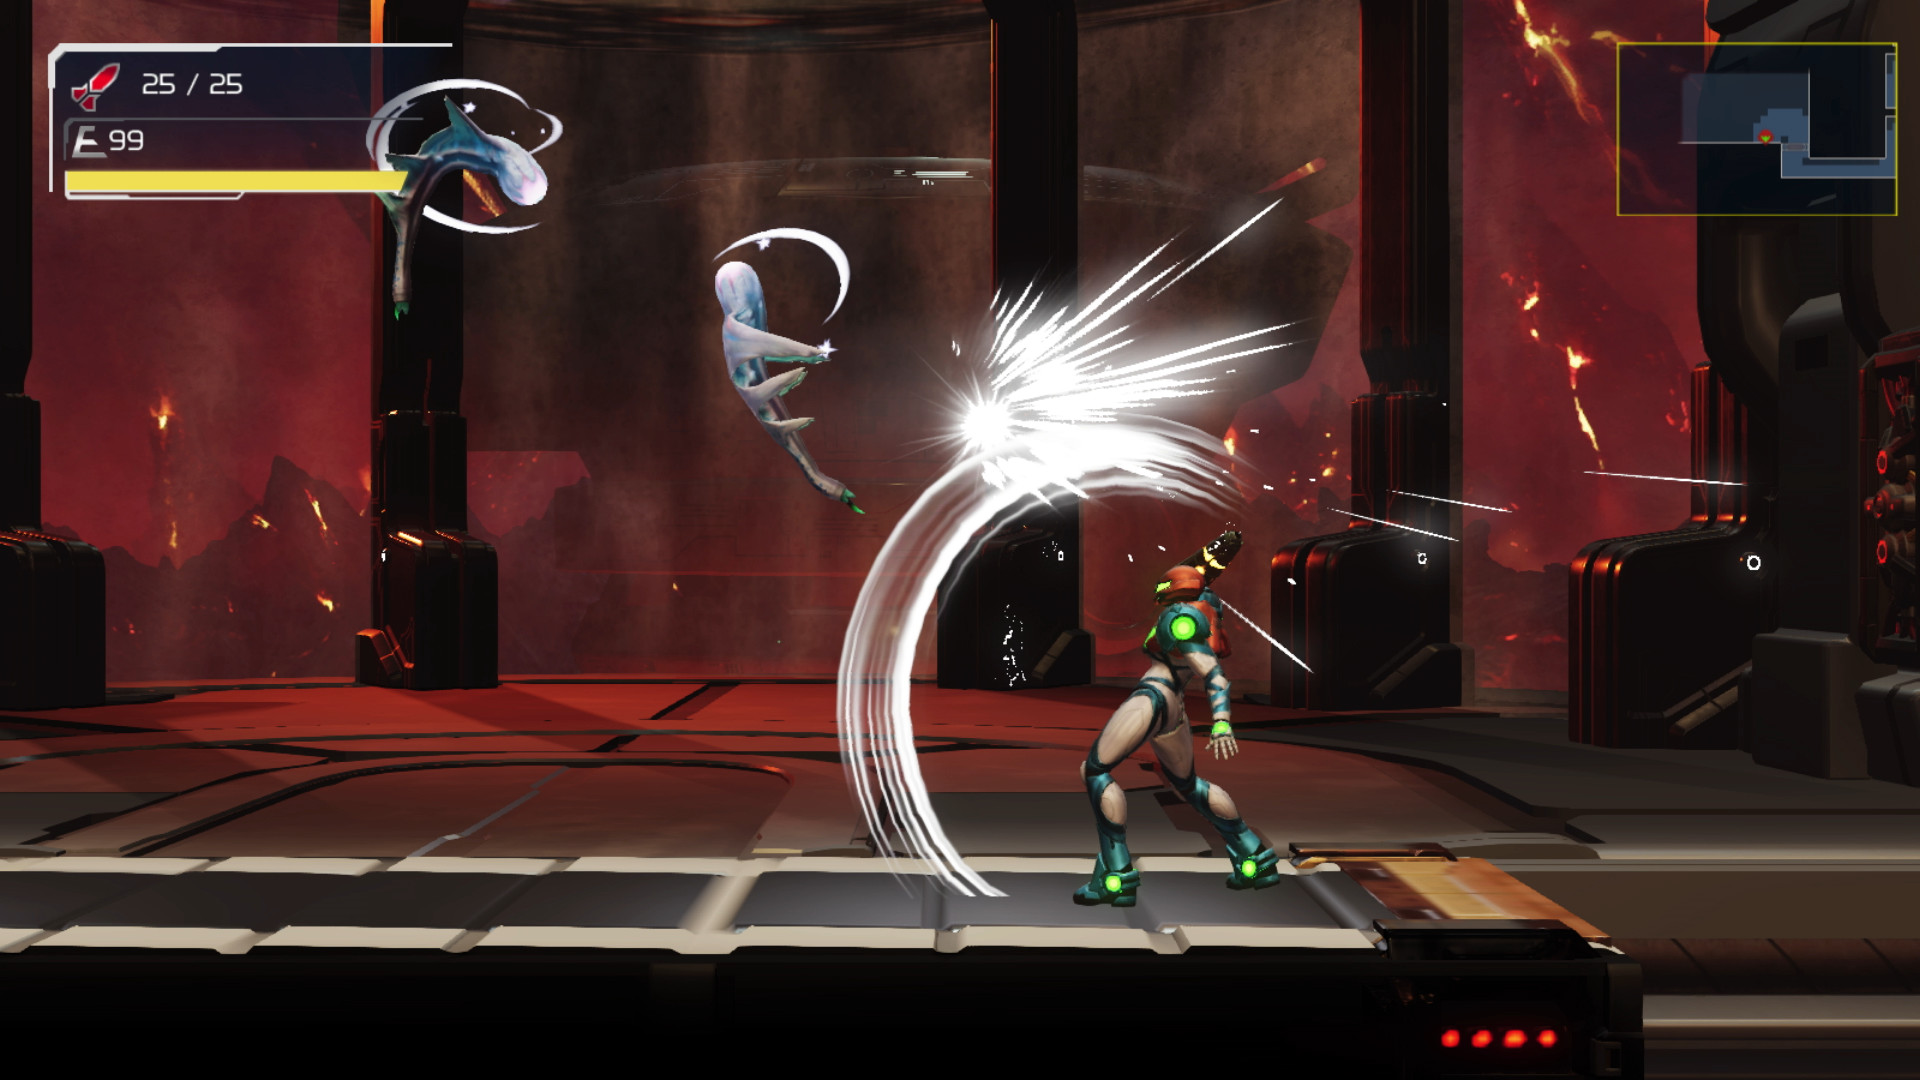 Counter-attacks make a return in Metroid Dread along with a new cloaking ability.